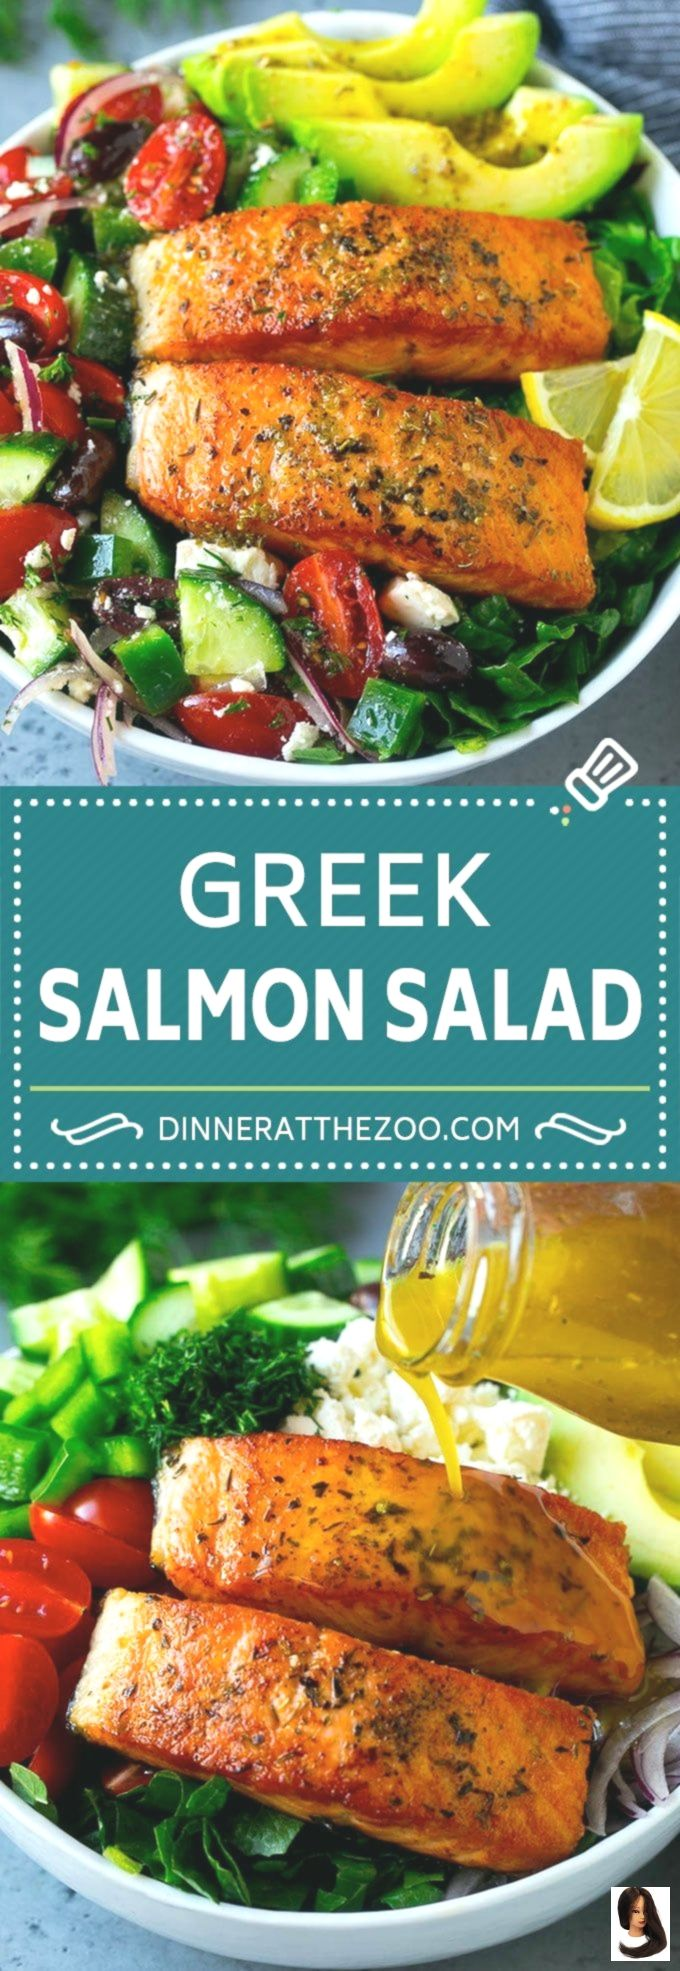 #Carb #Easy Dinner Recipes low carb #Griechisches #Lachs #Lachssalat #Rezept #Salmon #seafo Greek Salmon Salad Recipe | Low Carb Salmon Recipe | Salmon Salad #salmon #seafo...        Griechisches Lachssalat Rezept | Low Carb Lachs Rezept | Lachssalat #Lachs #Meeresfrüchte #Fisch #wenig Kohlehydrate #keto